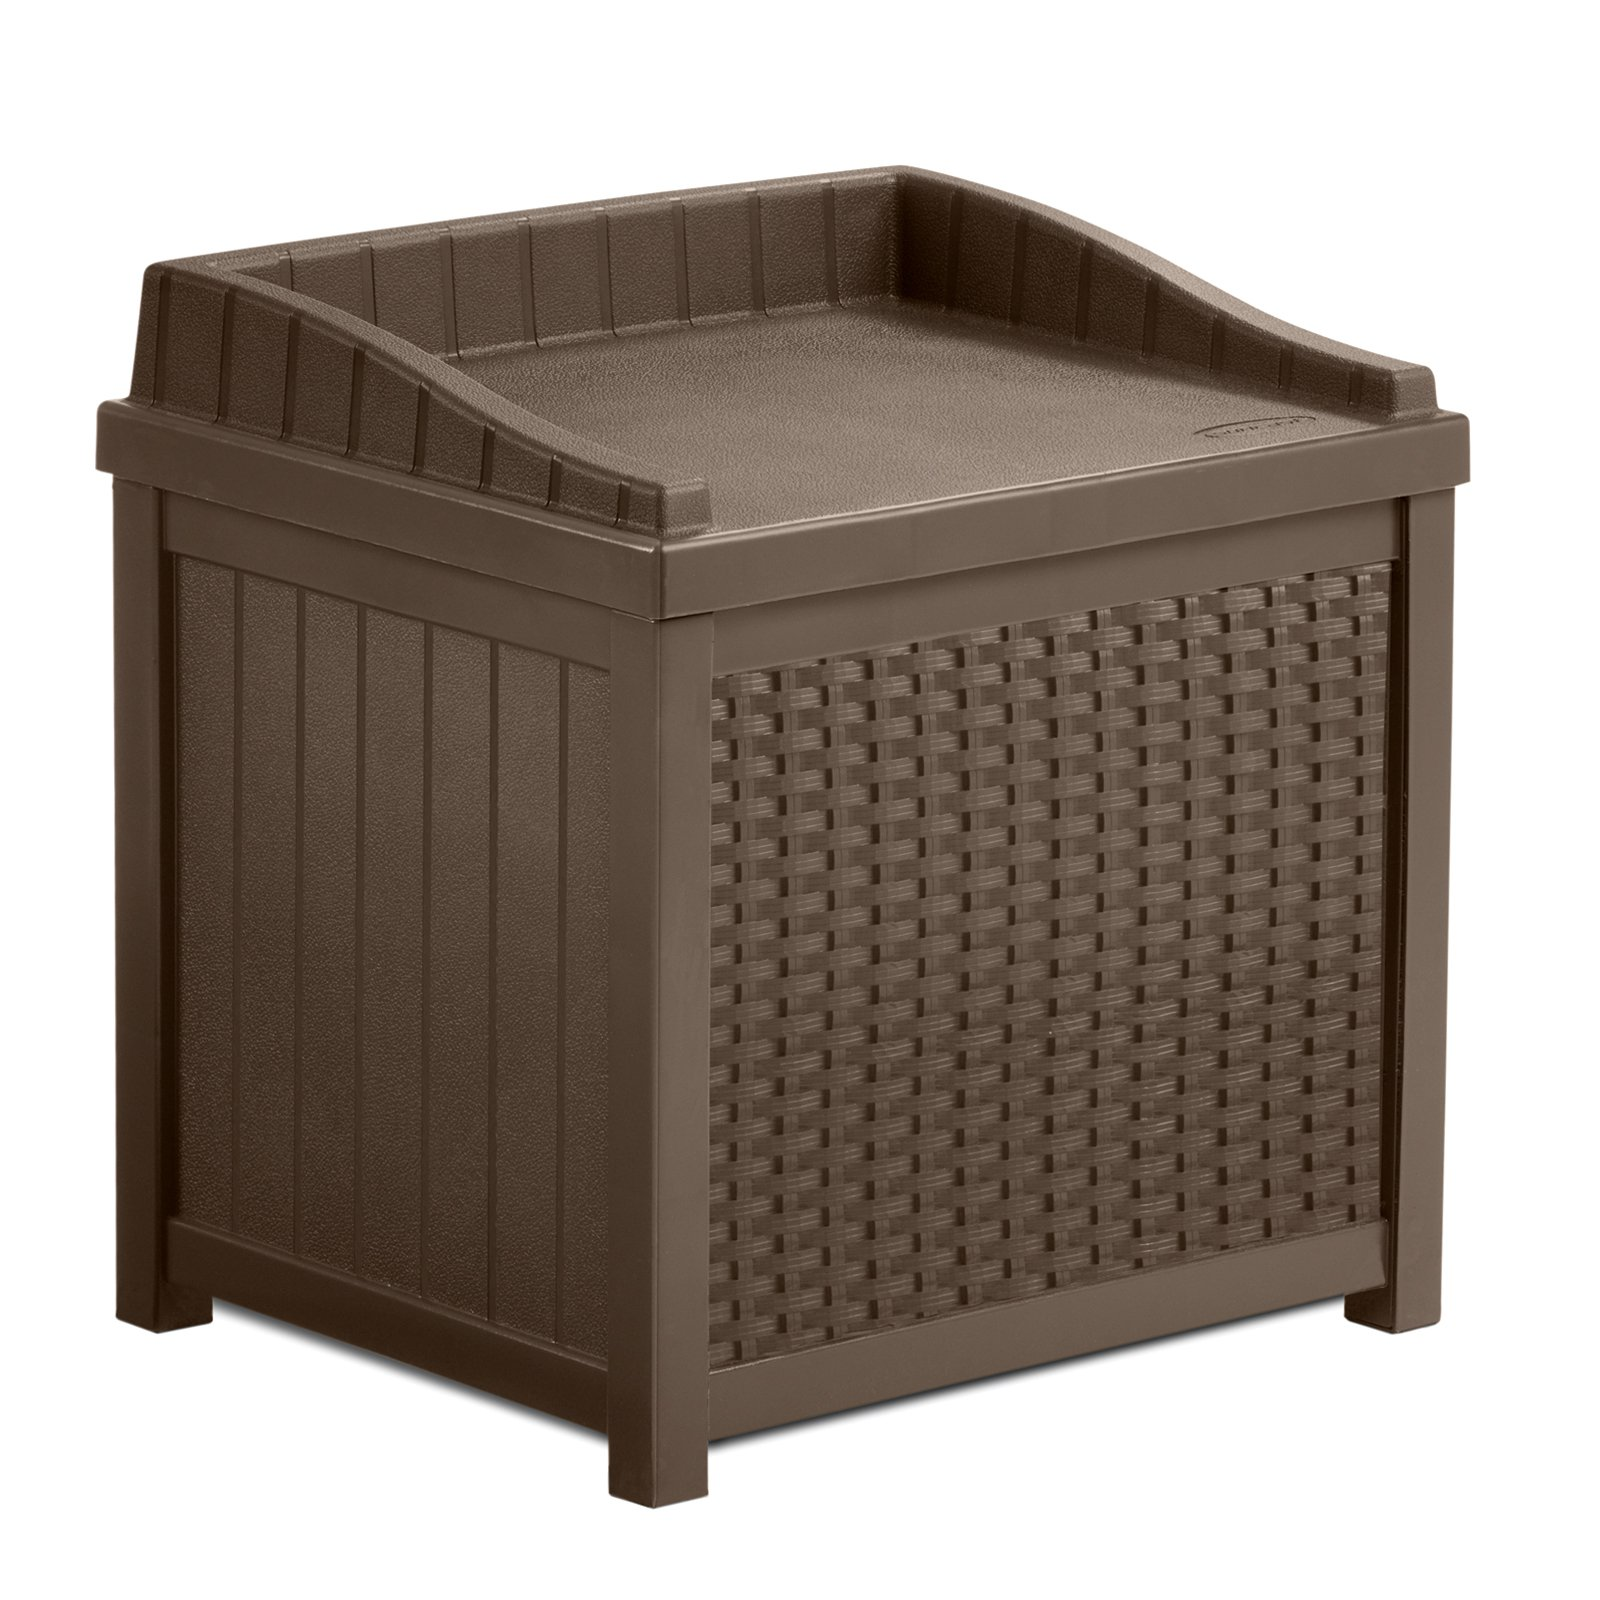 Incroyable Suncast 22 Gallon Java Resin Wicker Small Storage Seat Deck Box SSW1200